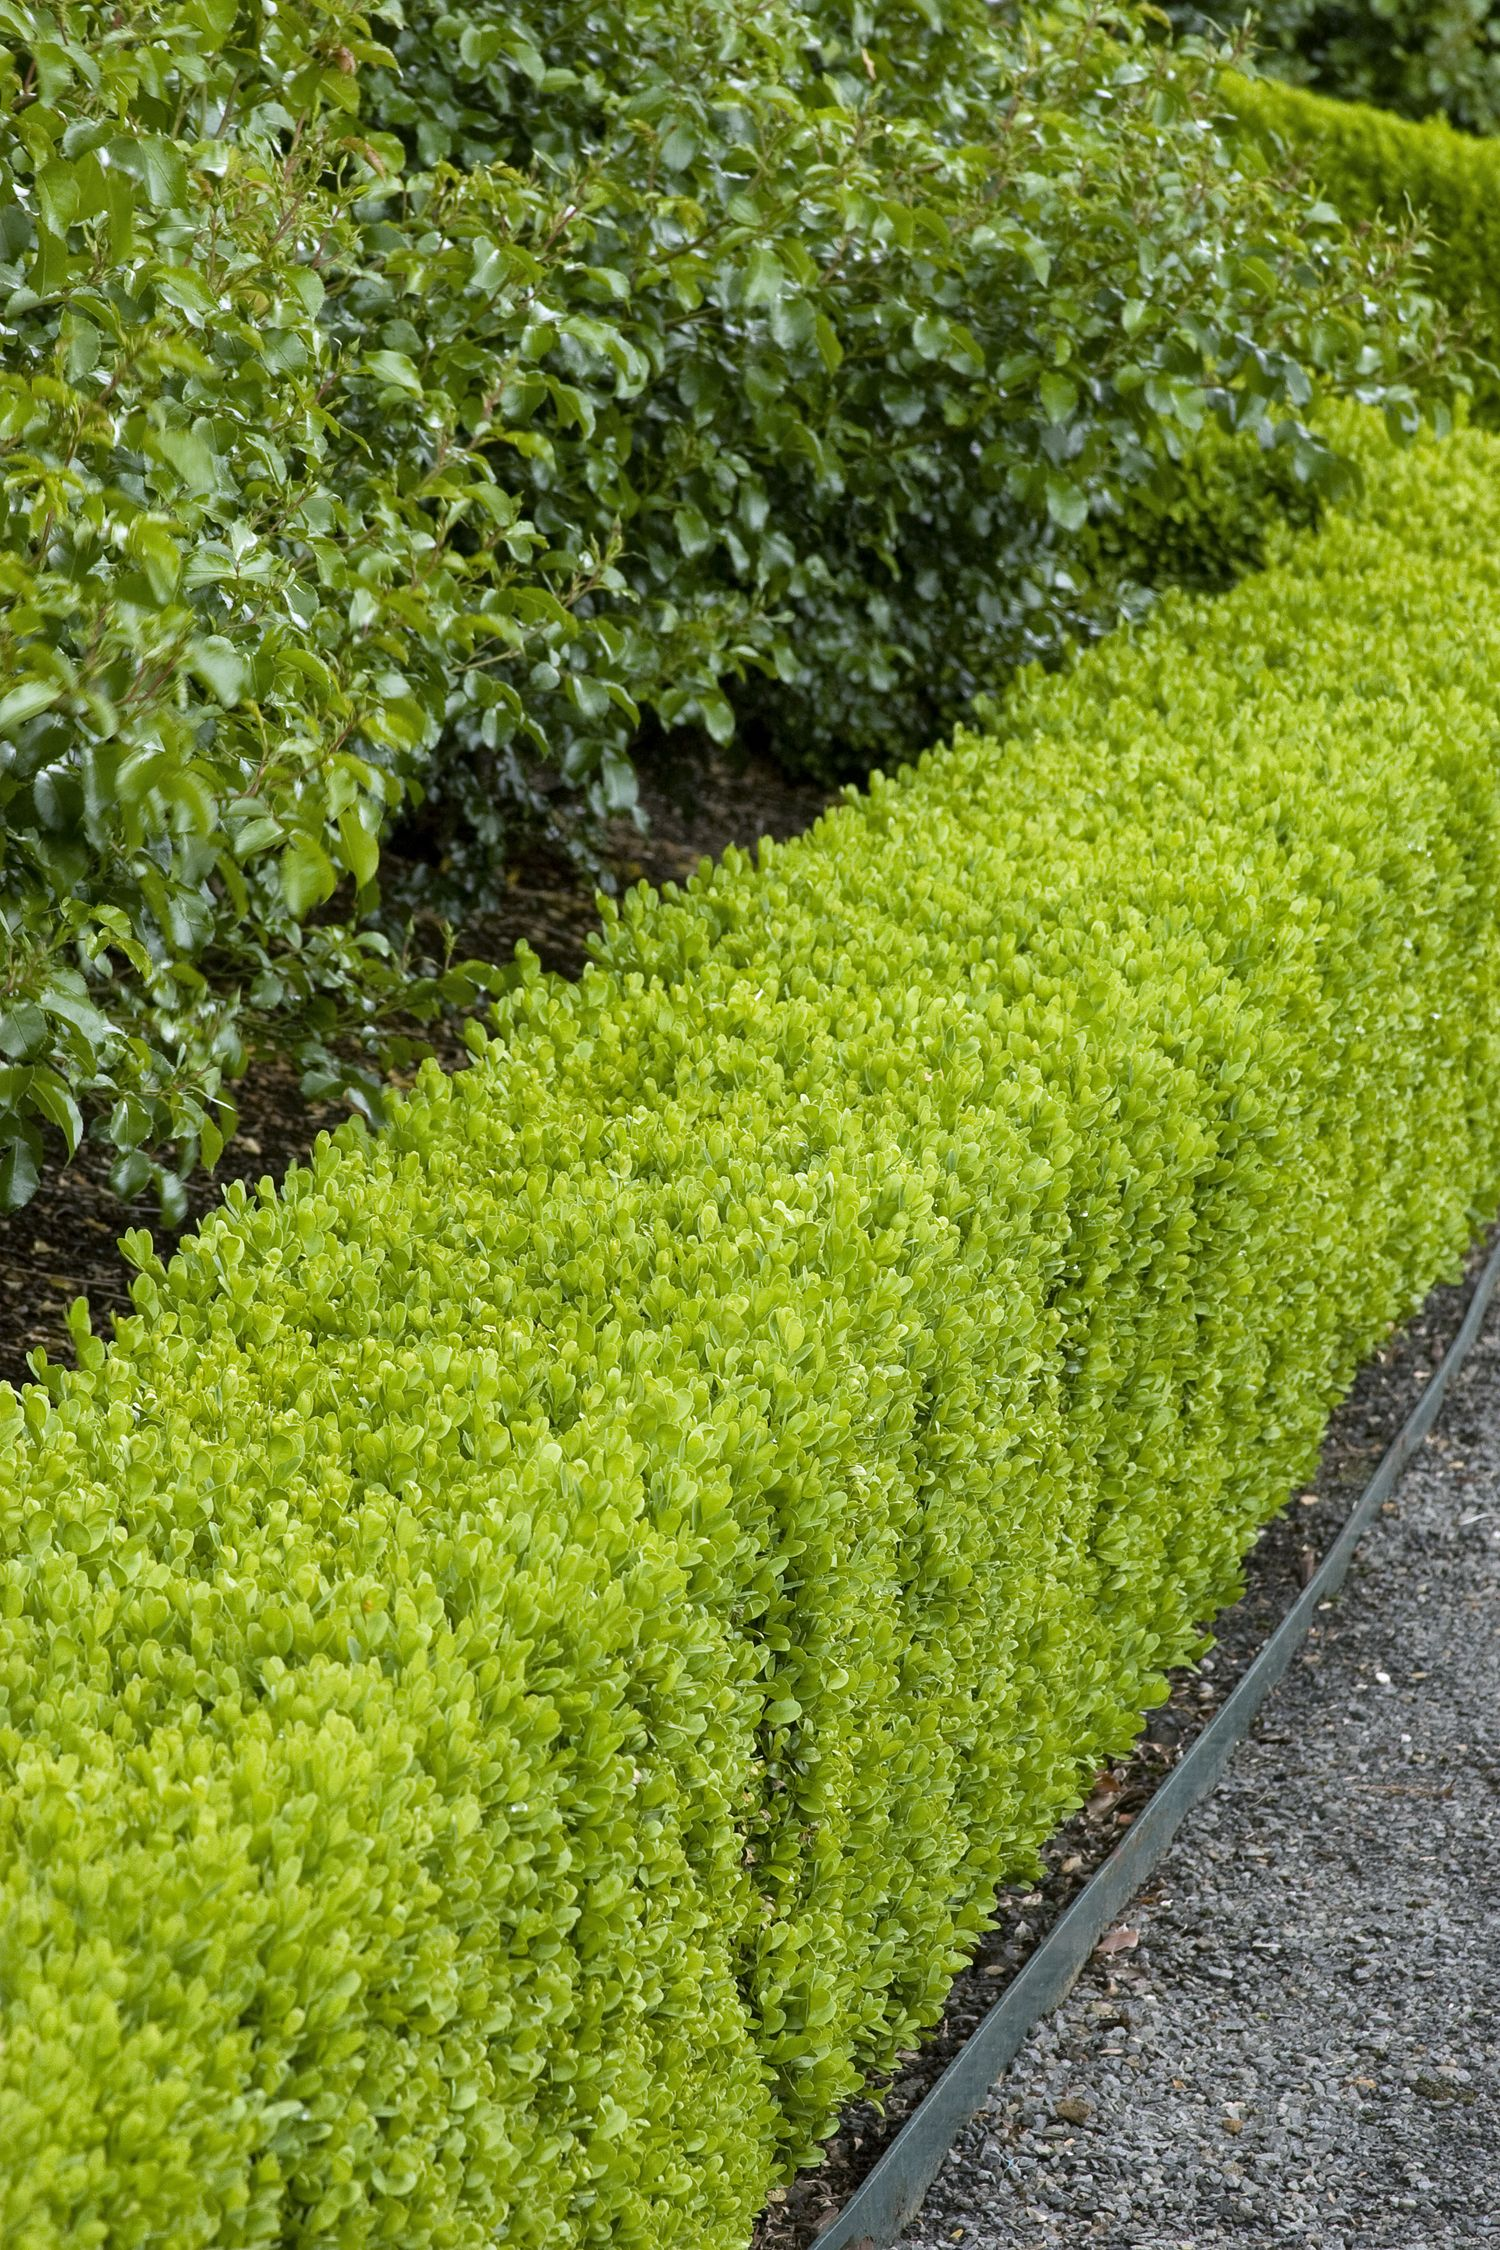 Best shrubs for full sun and privacy - Arborvitae And Lavender Excellent Color But The More Perennials The Better To Extend The Bloom Period Outdoors Decor Pinterest Perennials